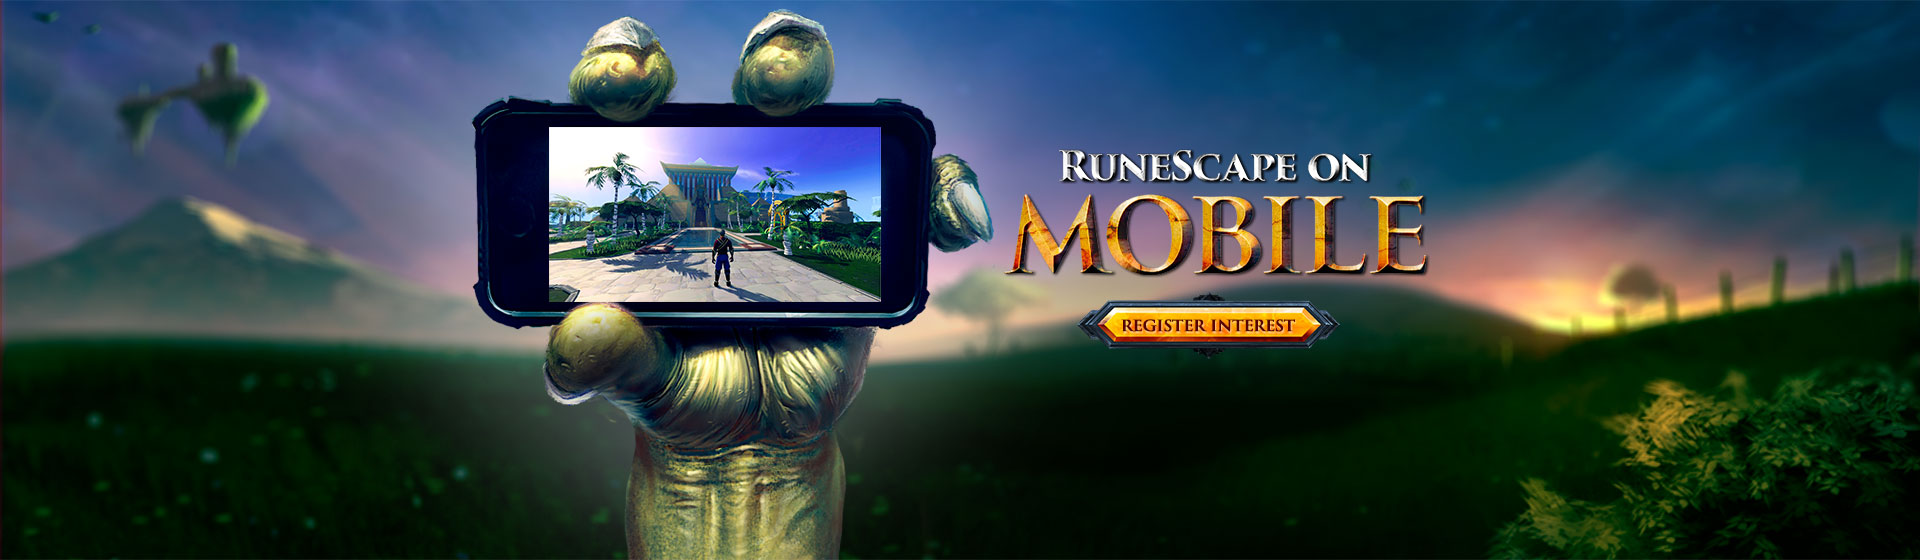 RuneScape Online Community - Forums, News, Events and more